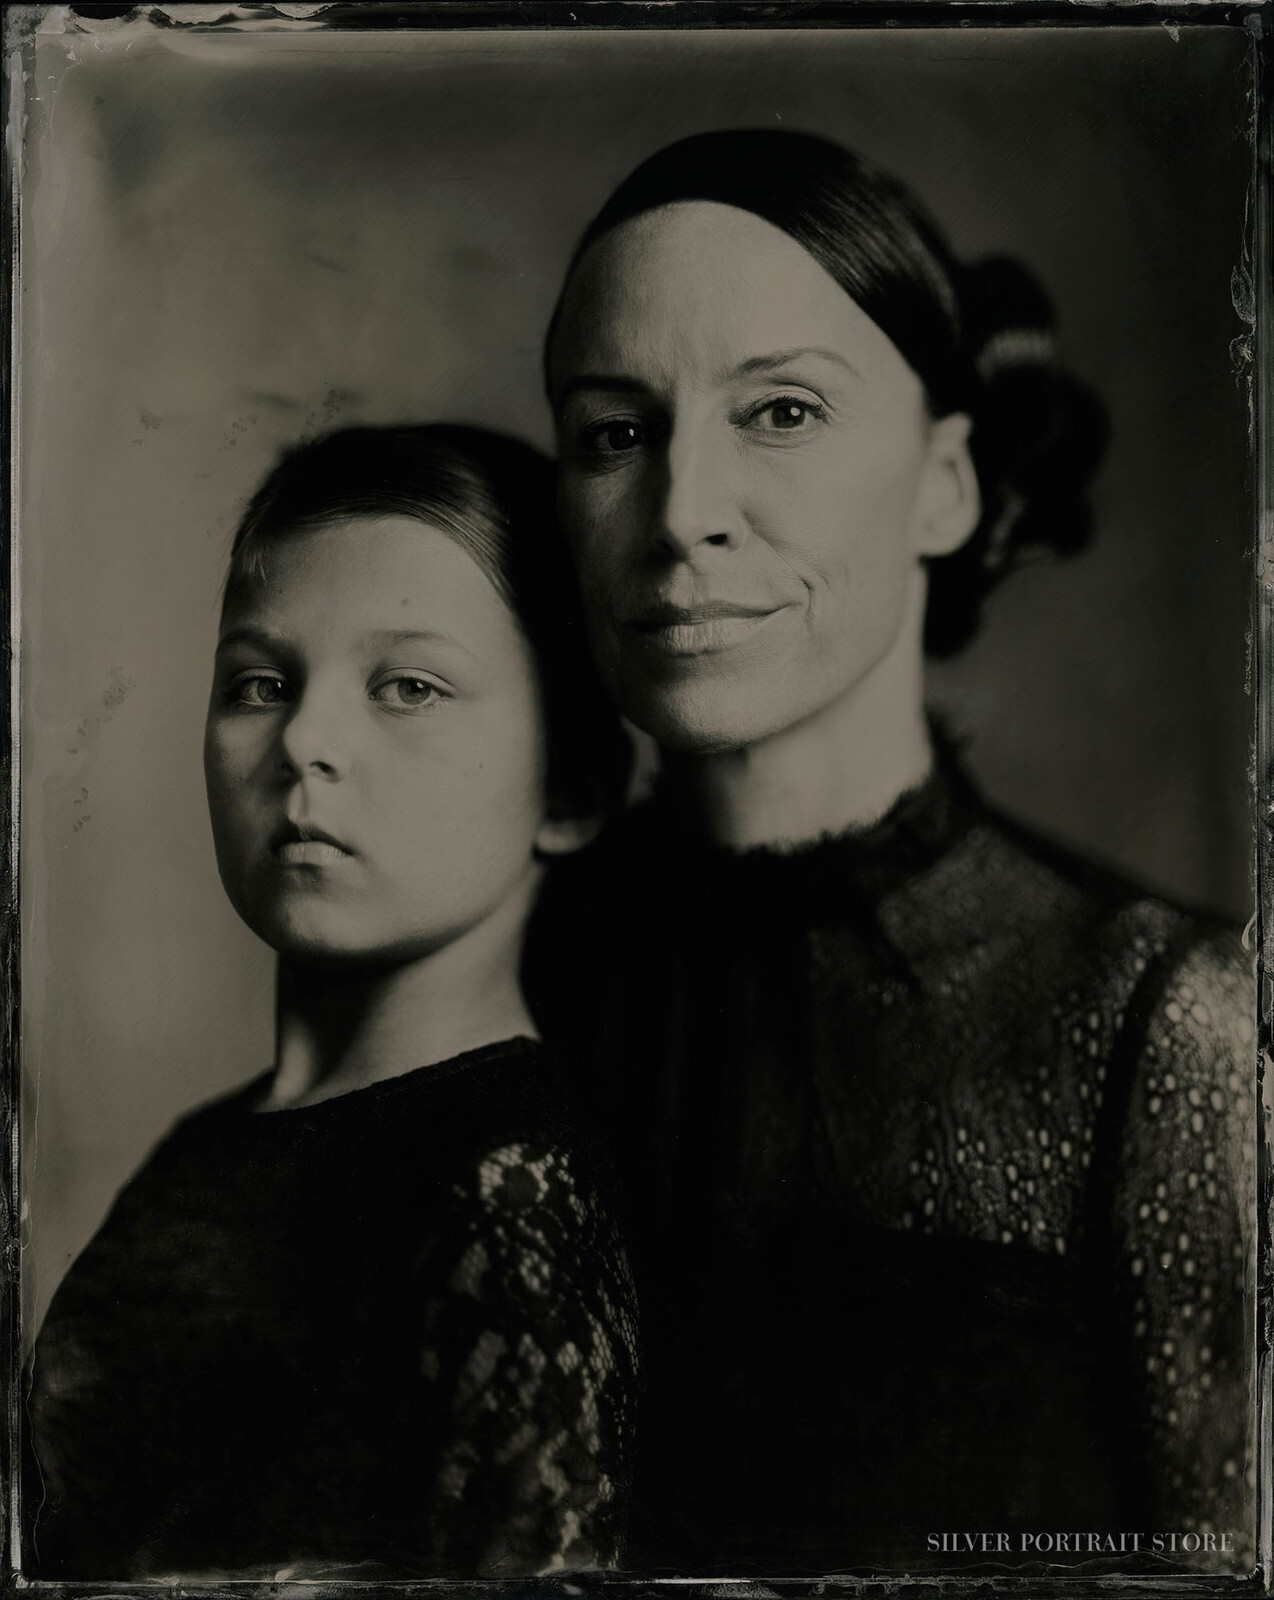 Zahir & Janet-Silver Portrait Store-Wet plate collodion-Black Glas Ambrotype 20 x 25 cm.